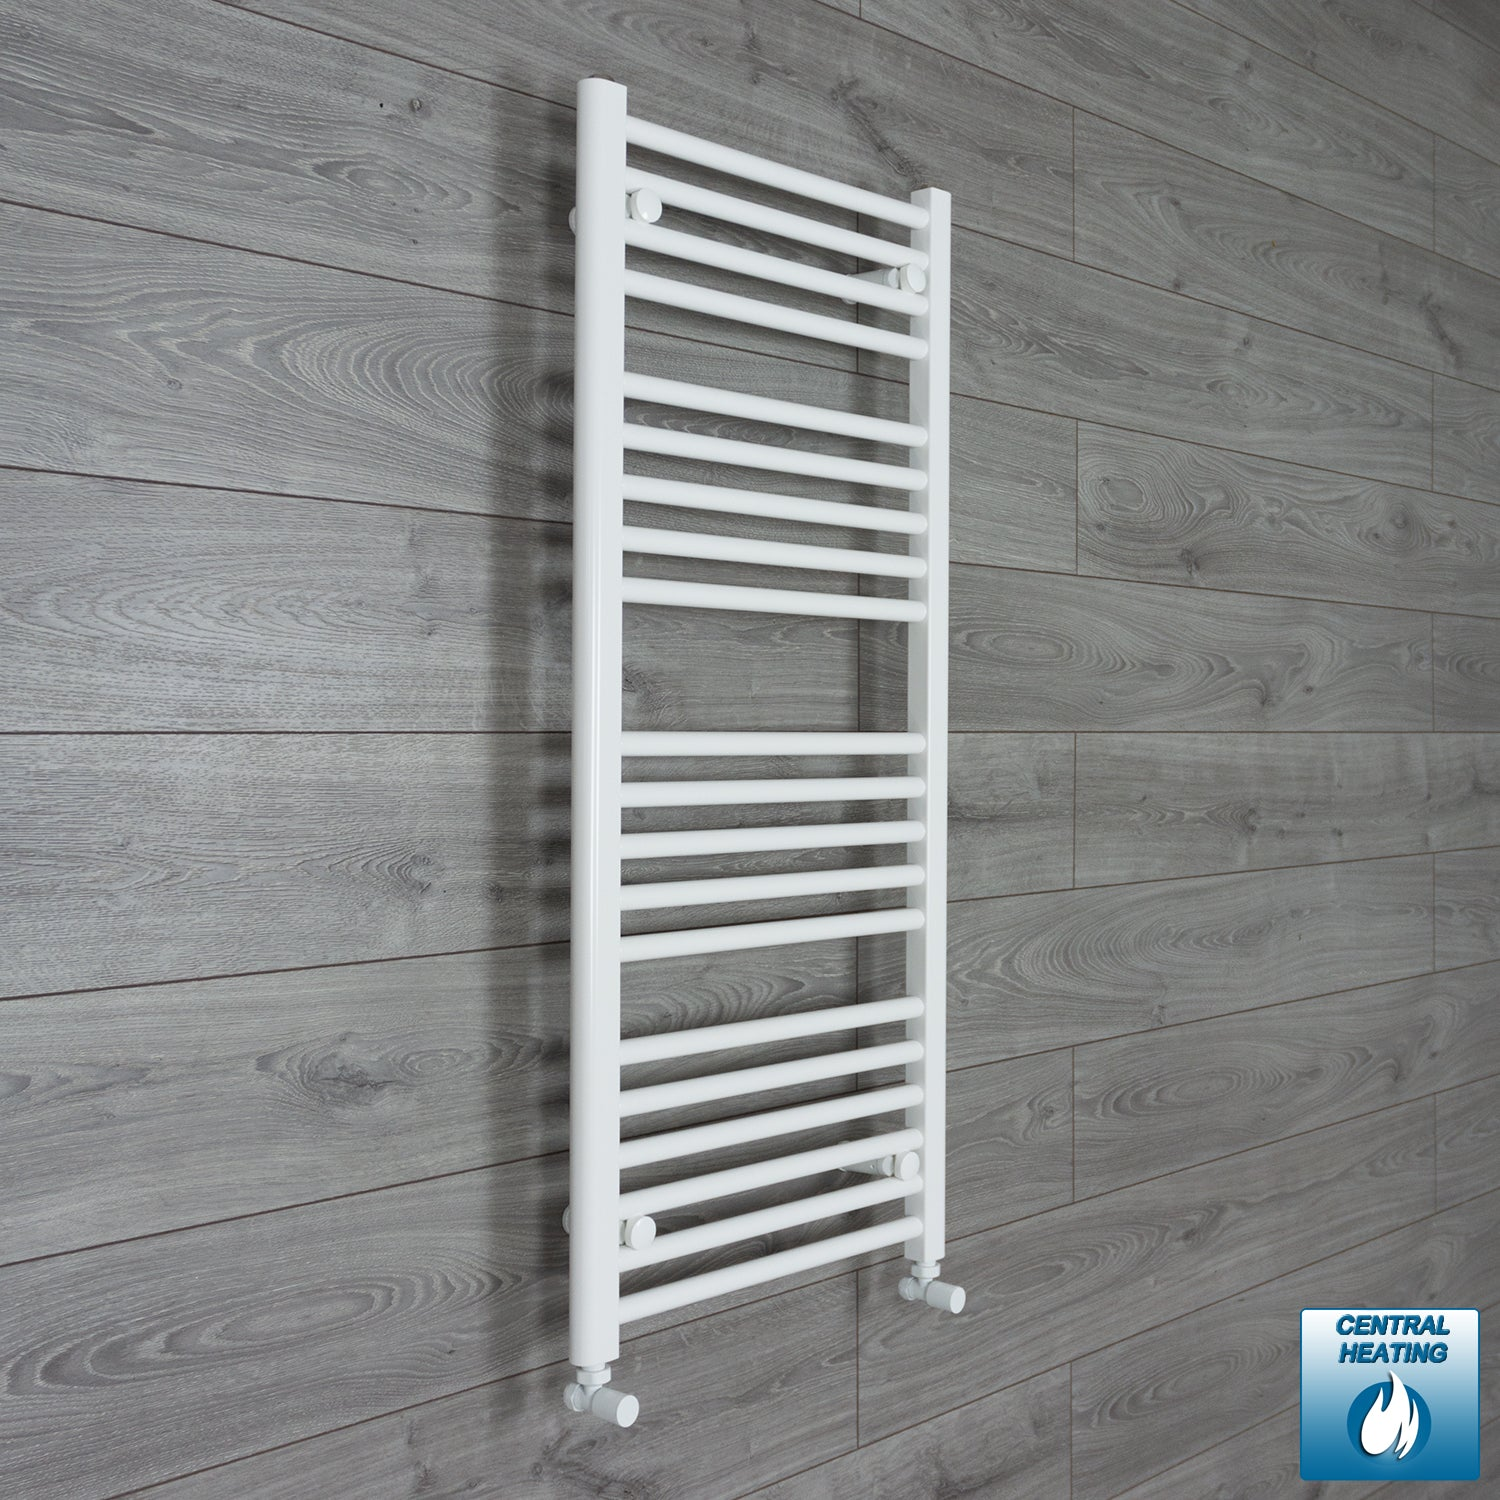 600mm x 1100mm High White Towel Rail Radiator With Angled Valve